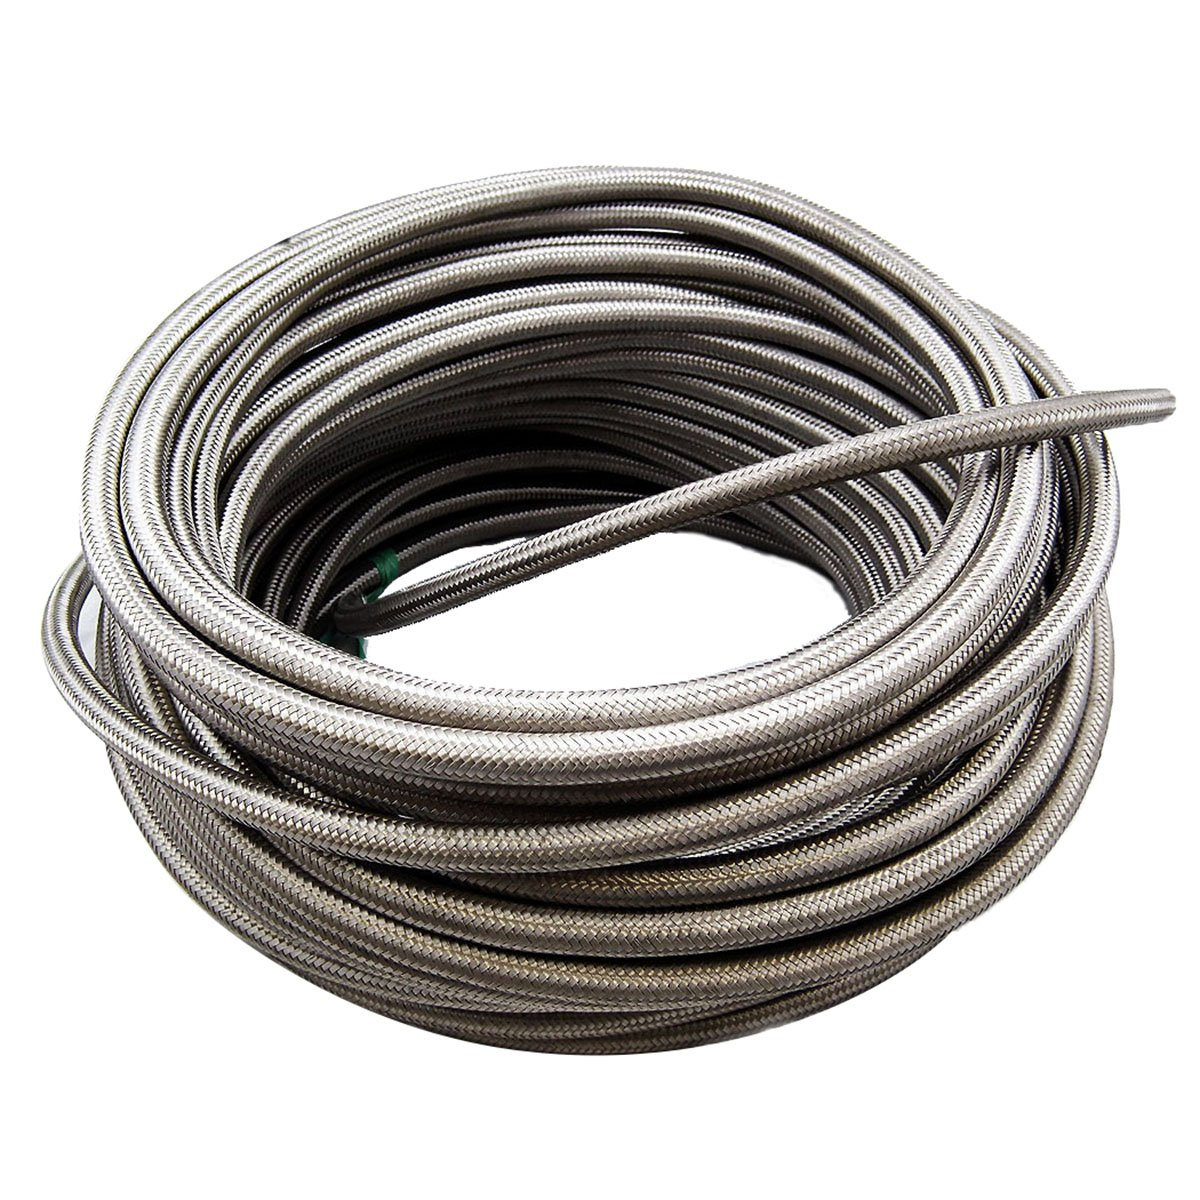 theBlueStone 10FT -8AN Stainless Steel Braided Fuel Line Hose for 1/2 Tube Size